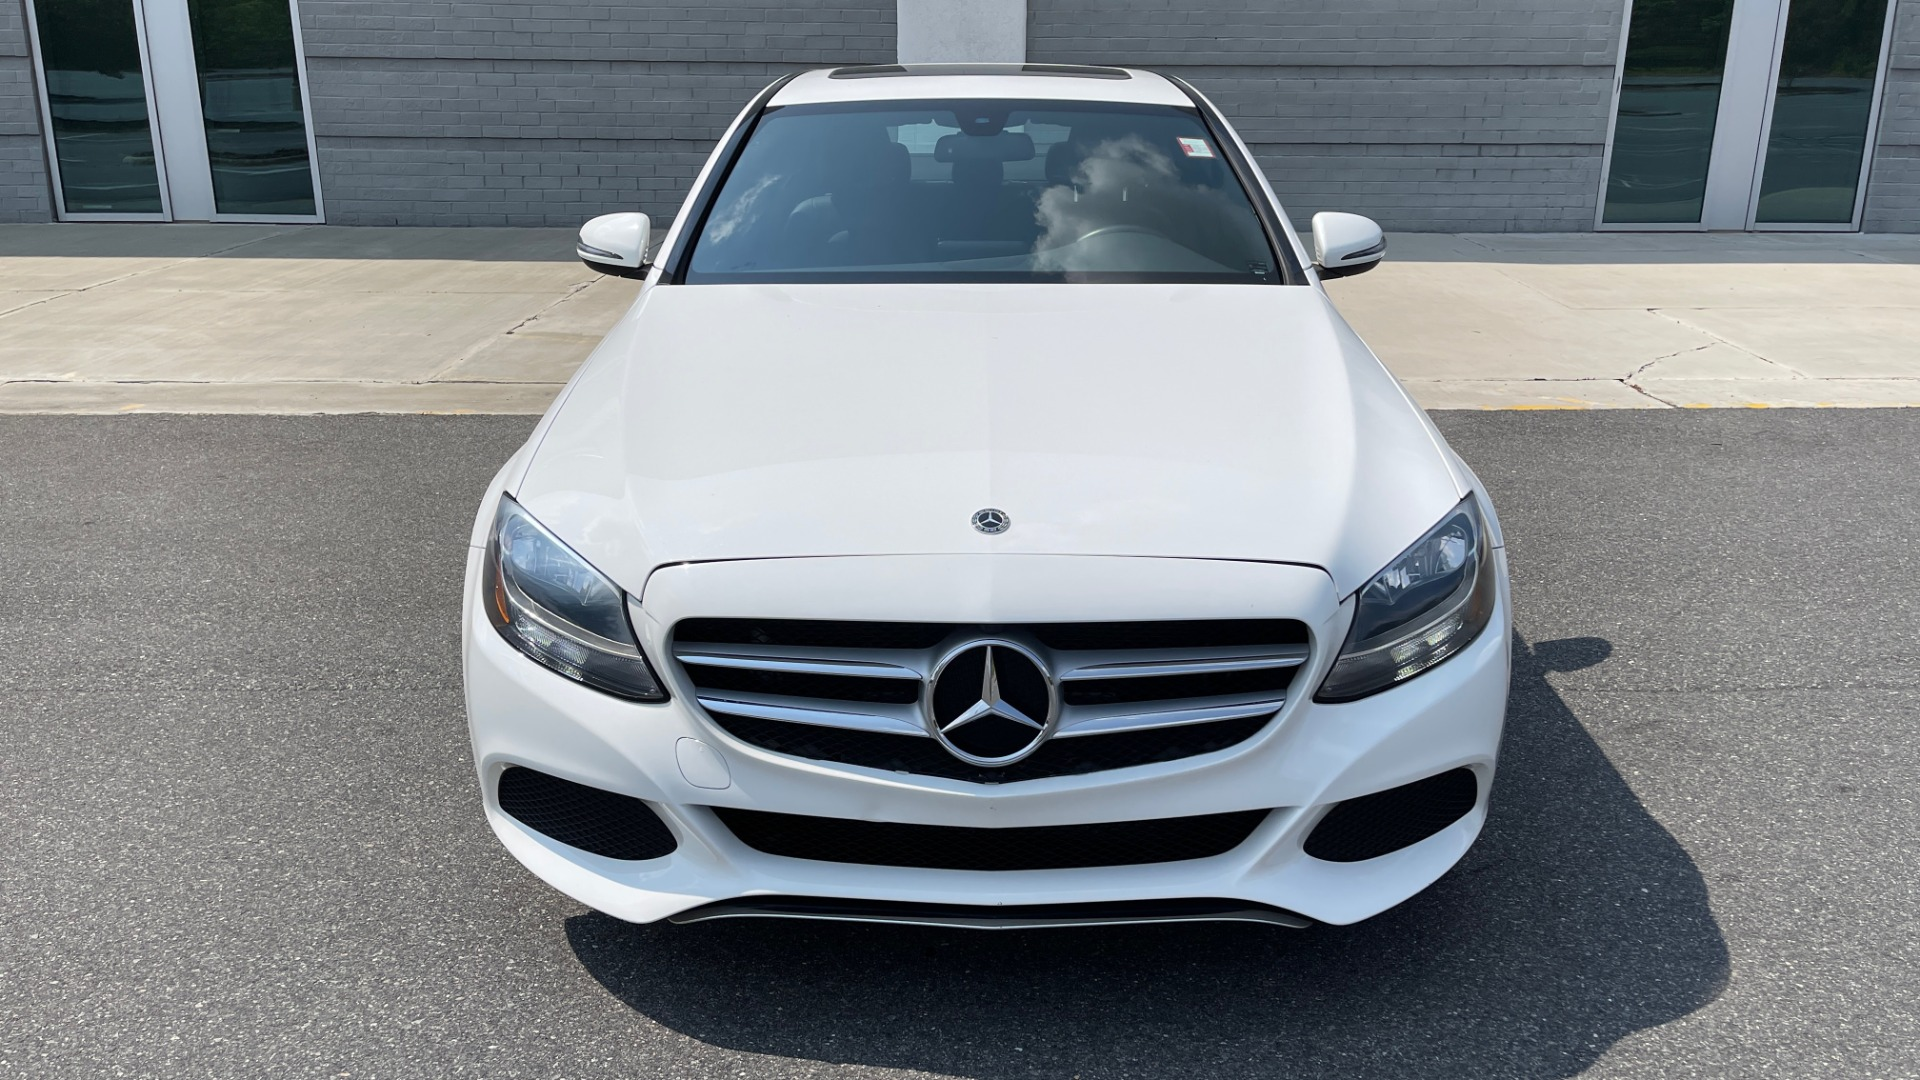 Used 2018 Mercedes-Benz C-CLASS C 300 / 2.0L / RWD / SUNROOF / APPLE~ANDROID / REARVIEW for sale $29,995 at Formula Imports in Charlotte NC 28227 11